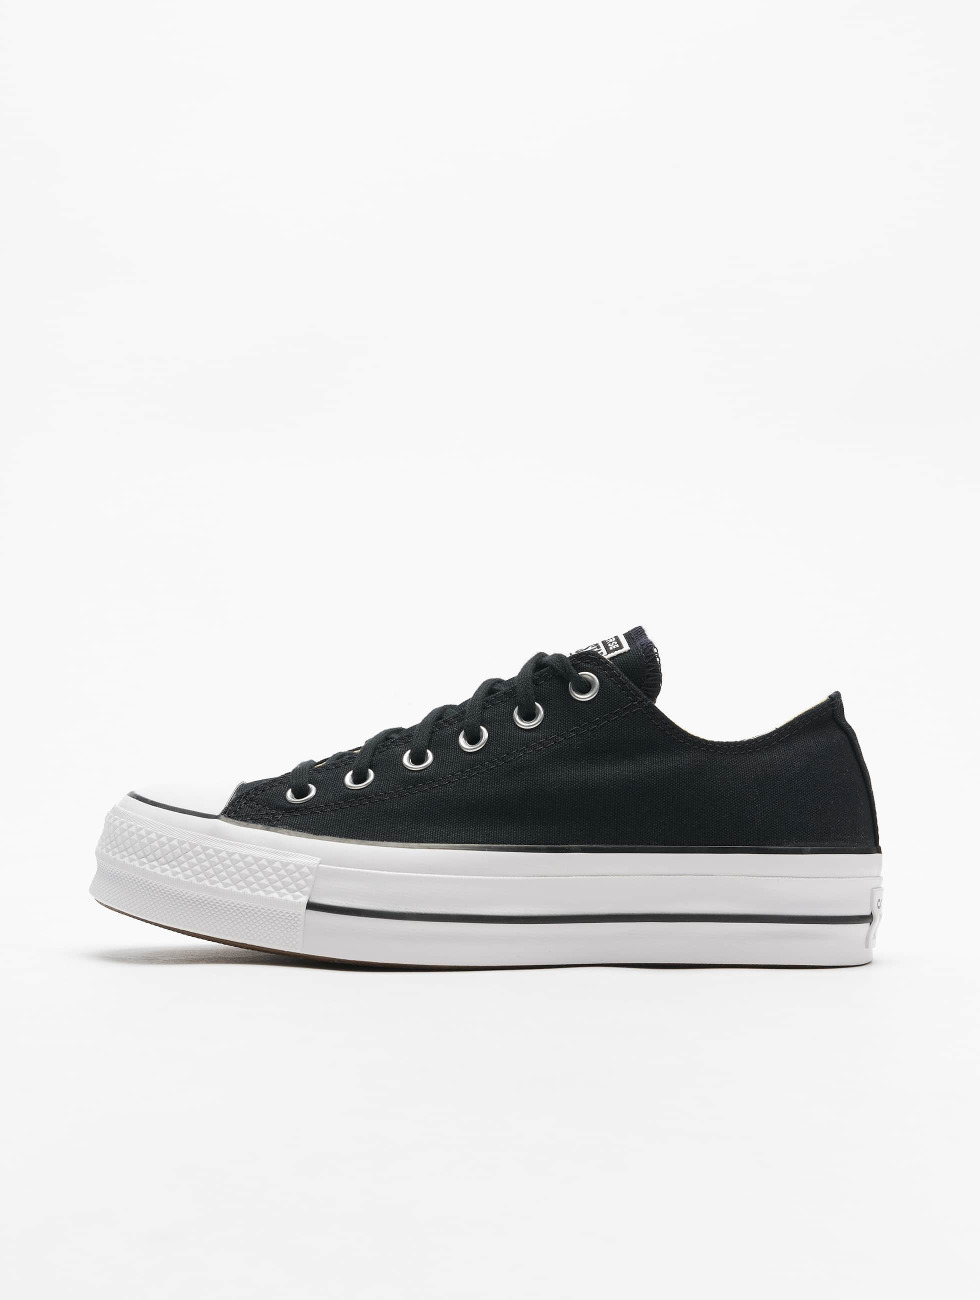 Converse Scarpa / Sneaker Chuck Taylor All Star Ox Ascensore In Nero 441 890 cySaTnZhB